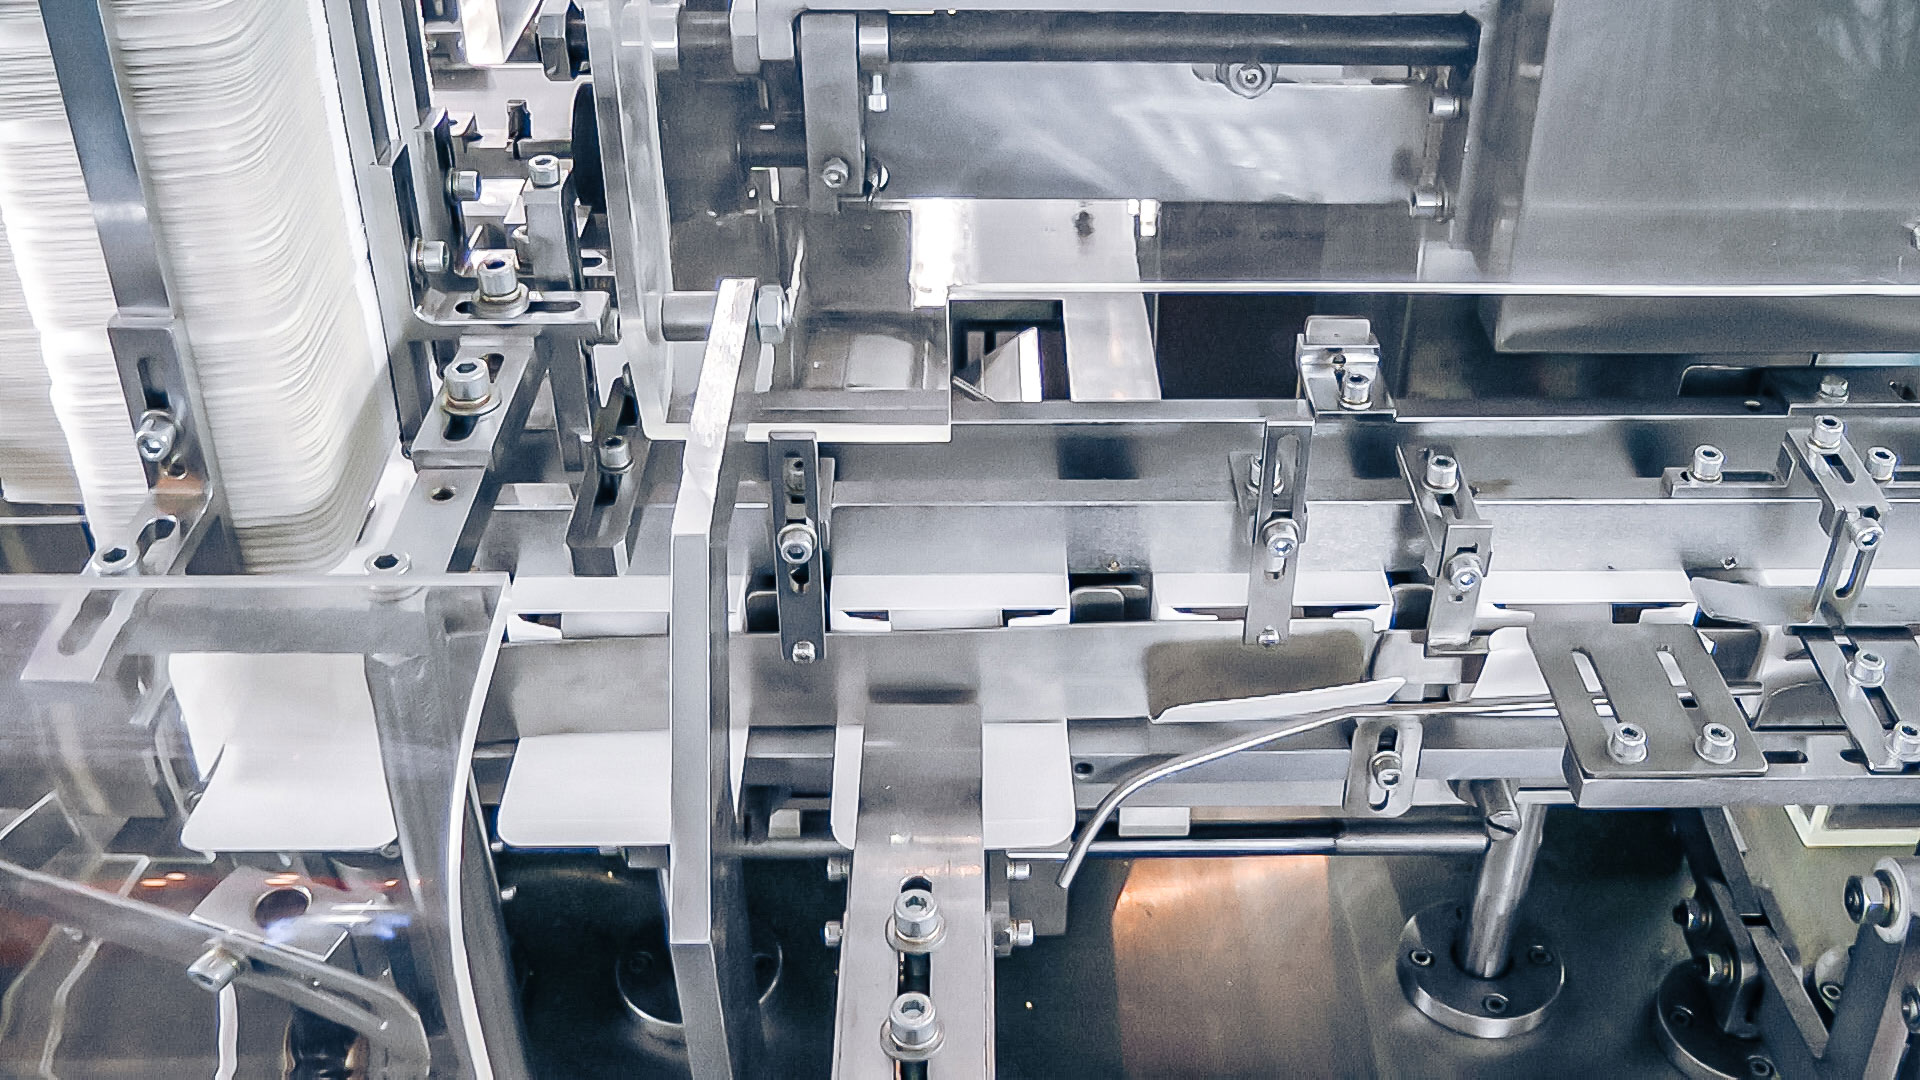 Automatic packaging equipment sashet in boxes in pharmaceutical production